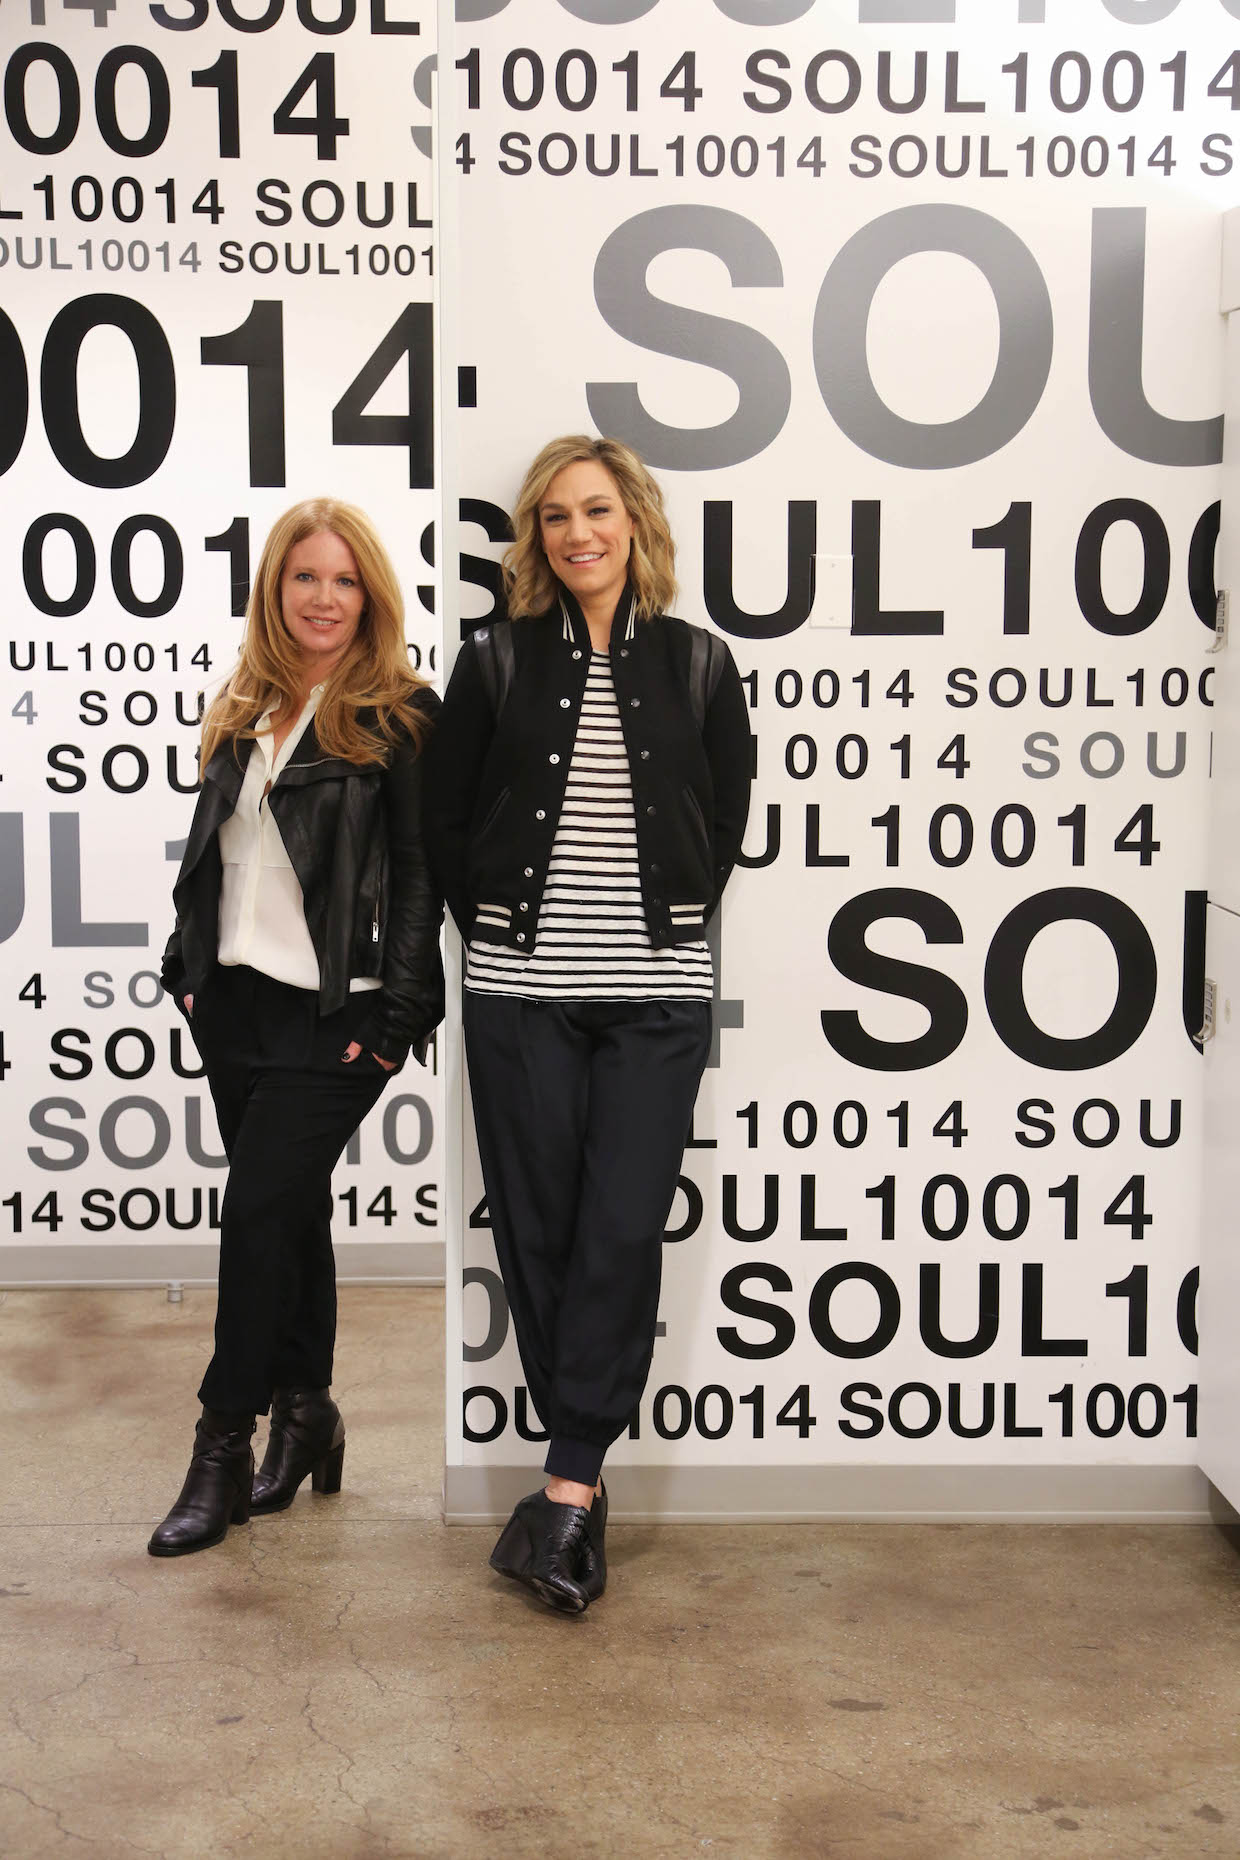 Soul Cycle founders